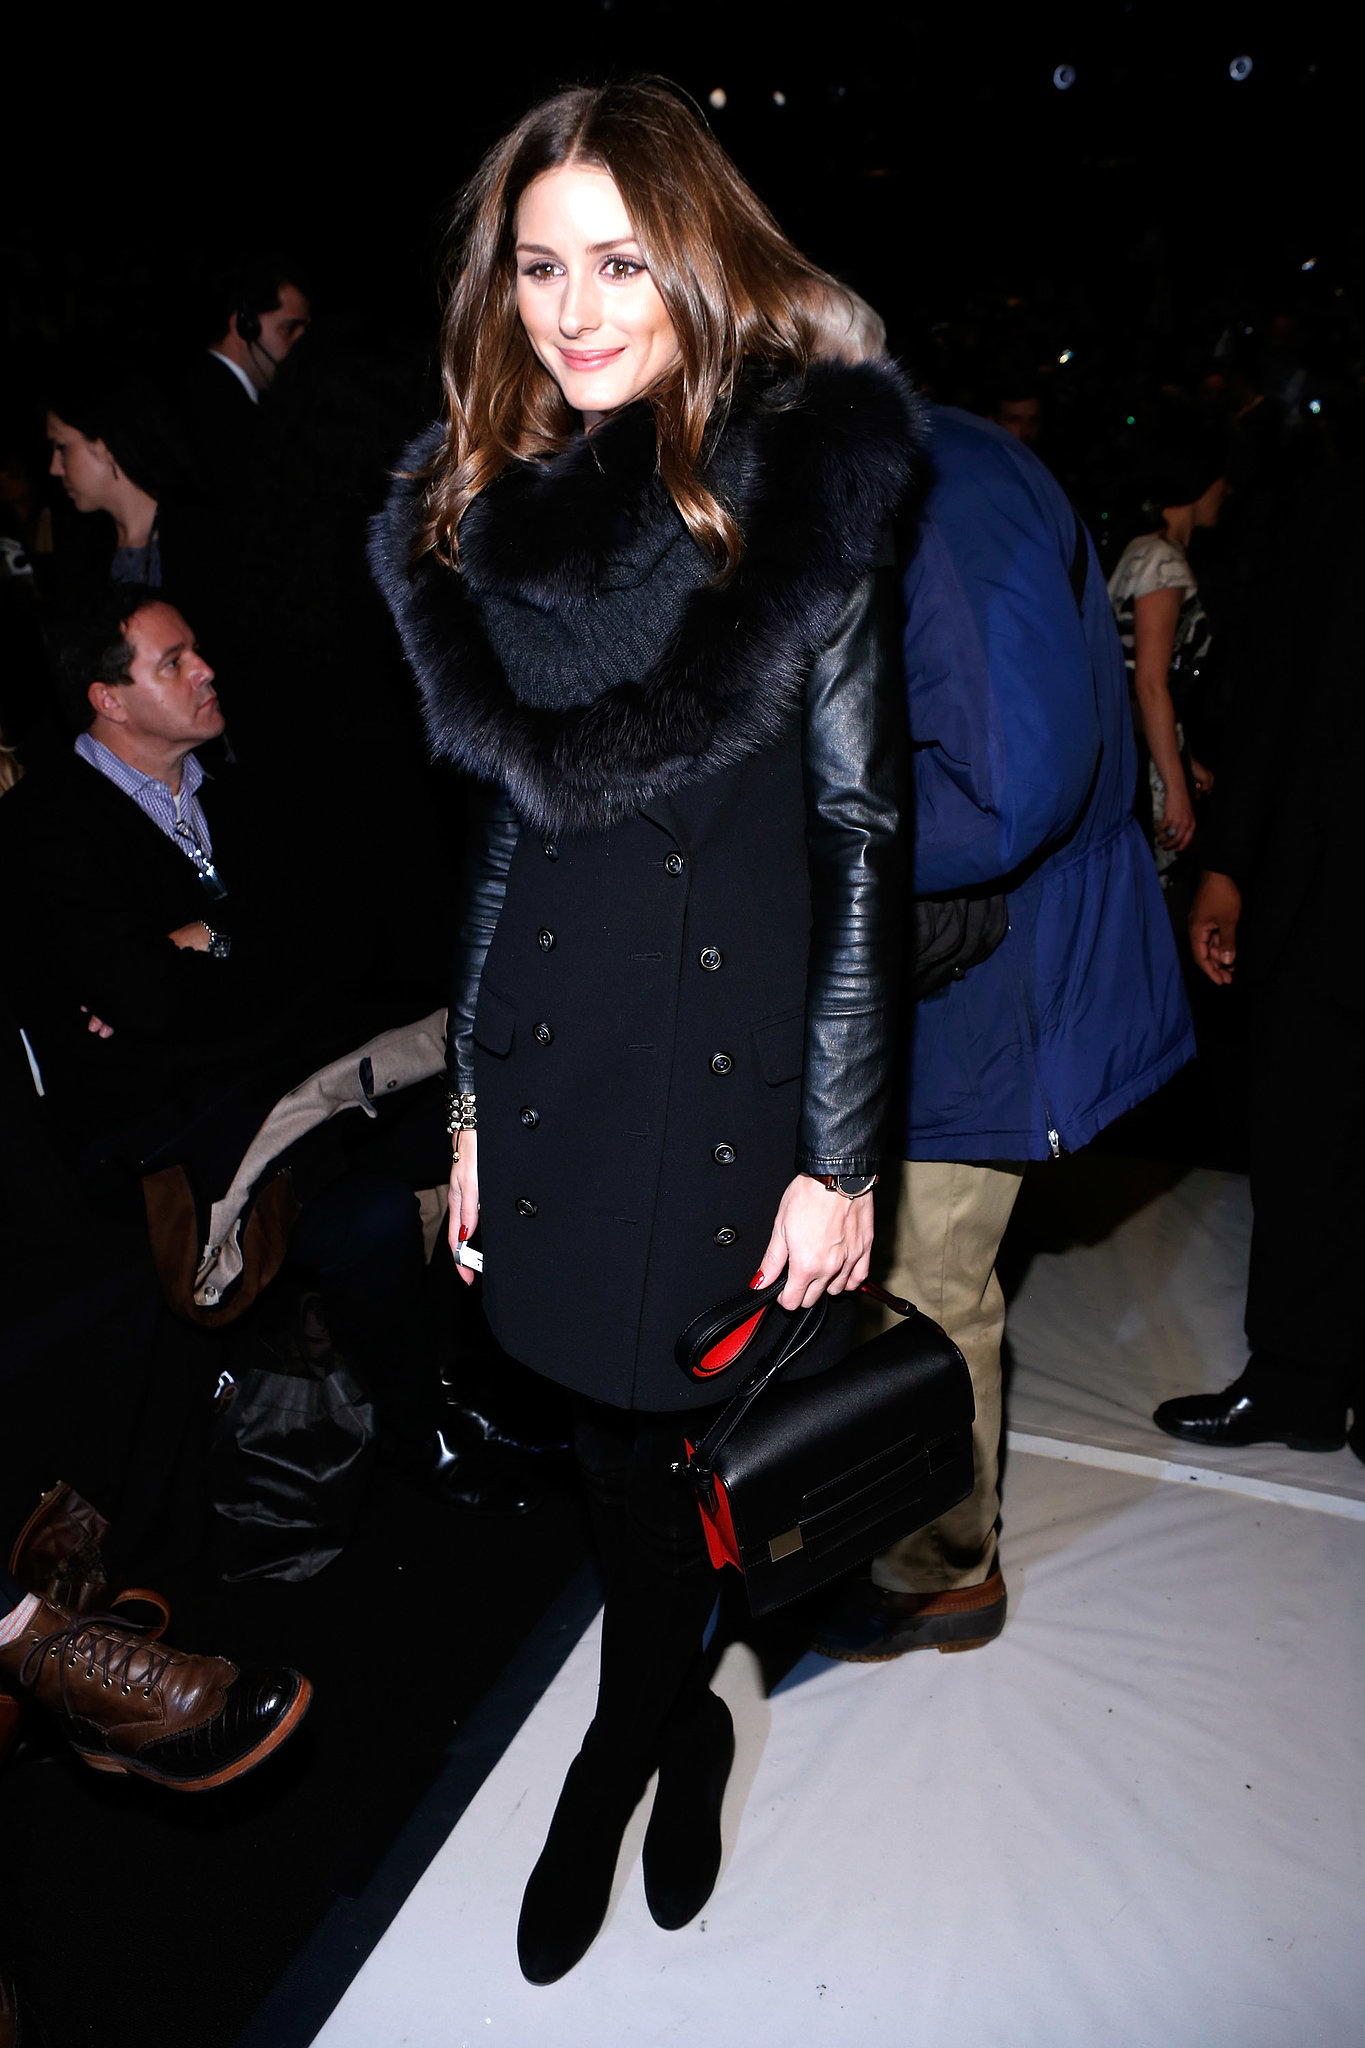 Working a leather-sleeved trench, fur snood, and suede boots at Carolina Herrera's show in NYC, Olivia proved that black on black is anything but boring.